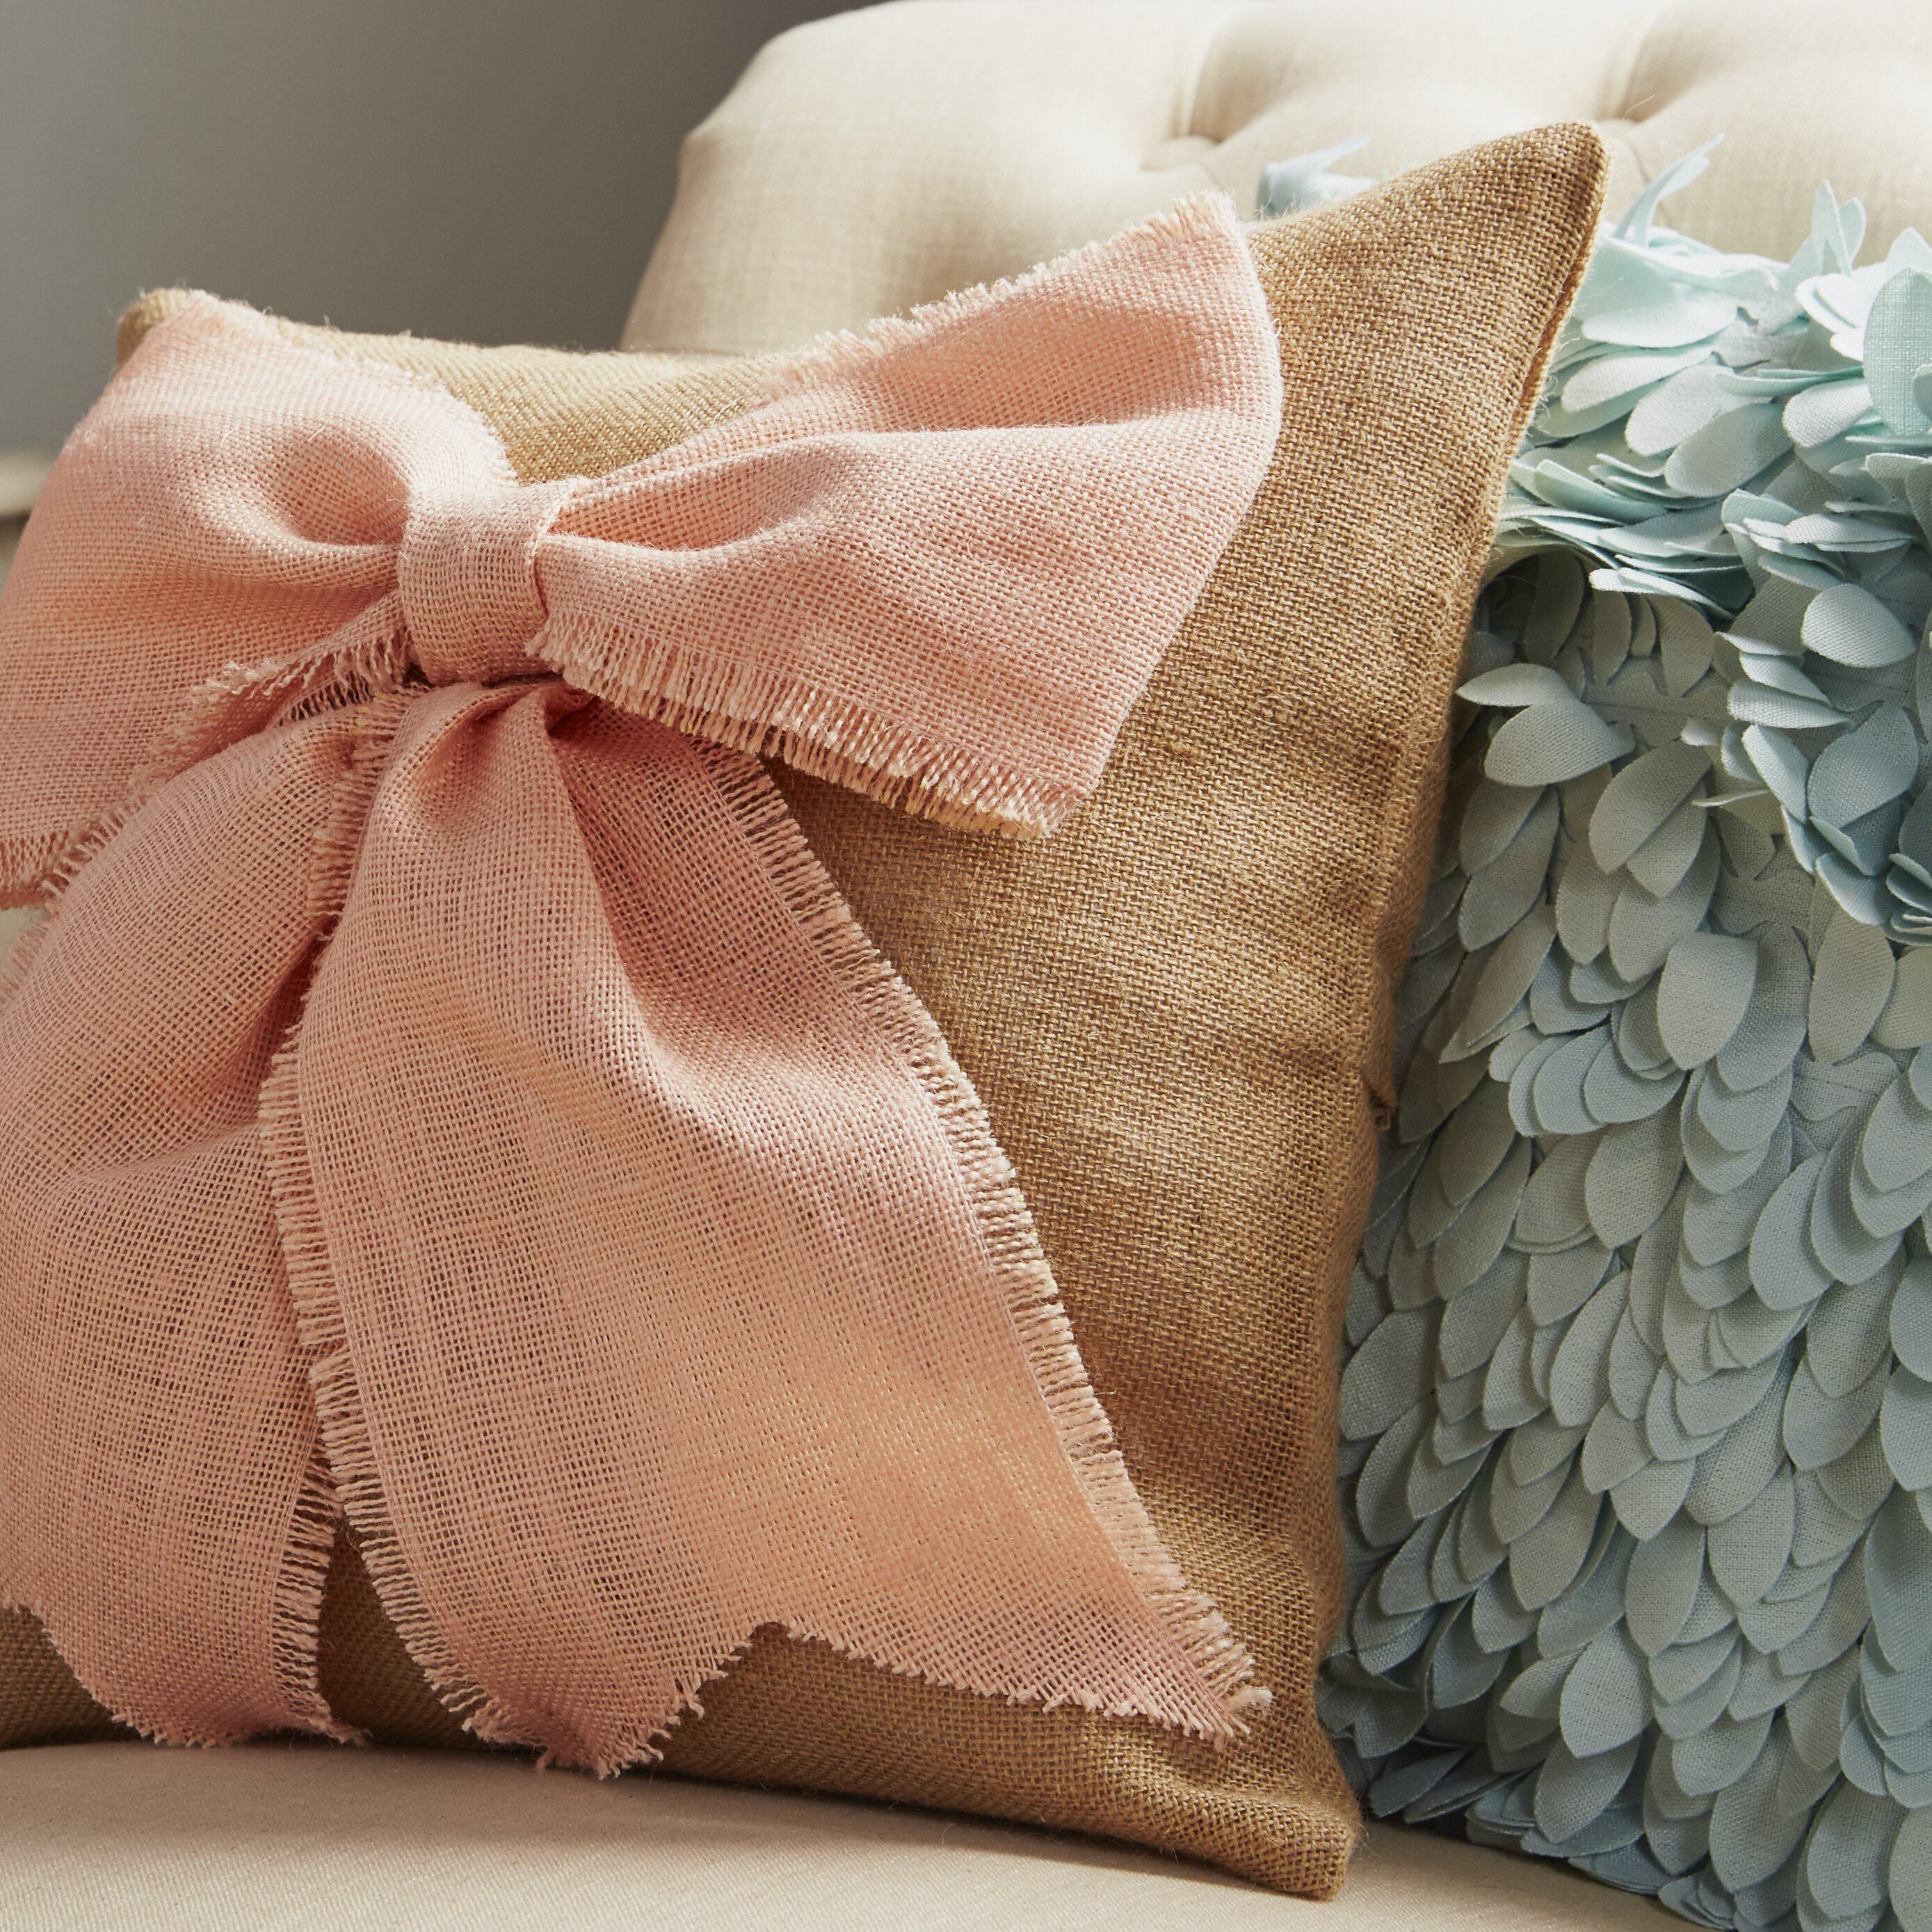 Throw Pillow With Bow : TheWatsonShop Bow Burlap Throw Pillow & Reviews Wayfair